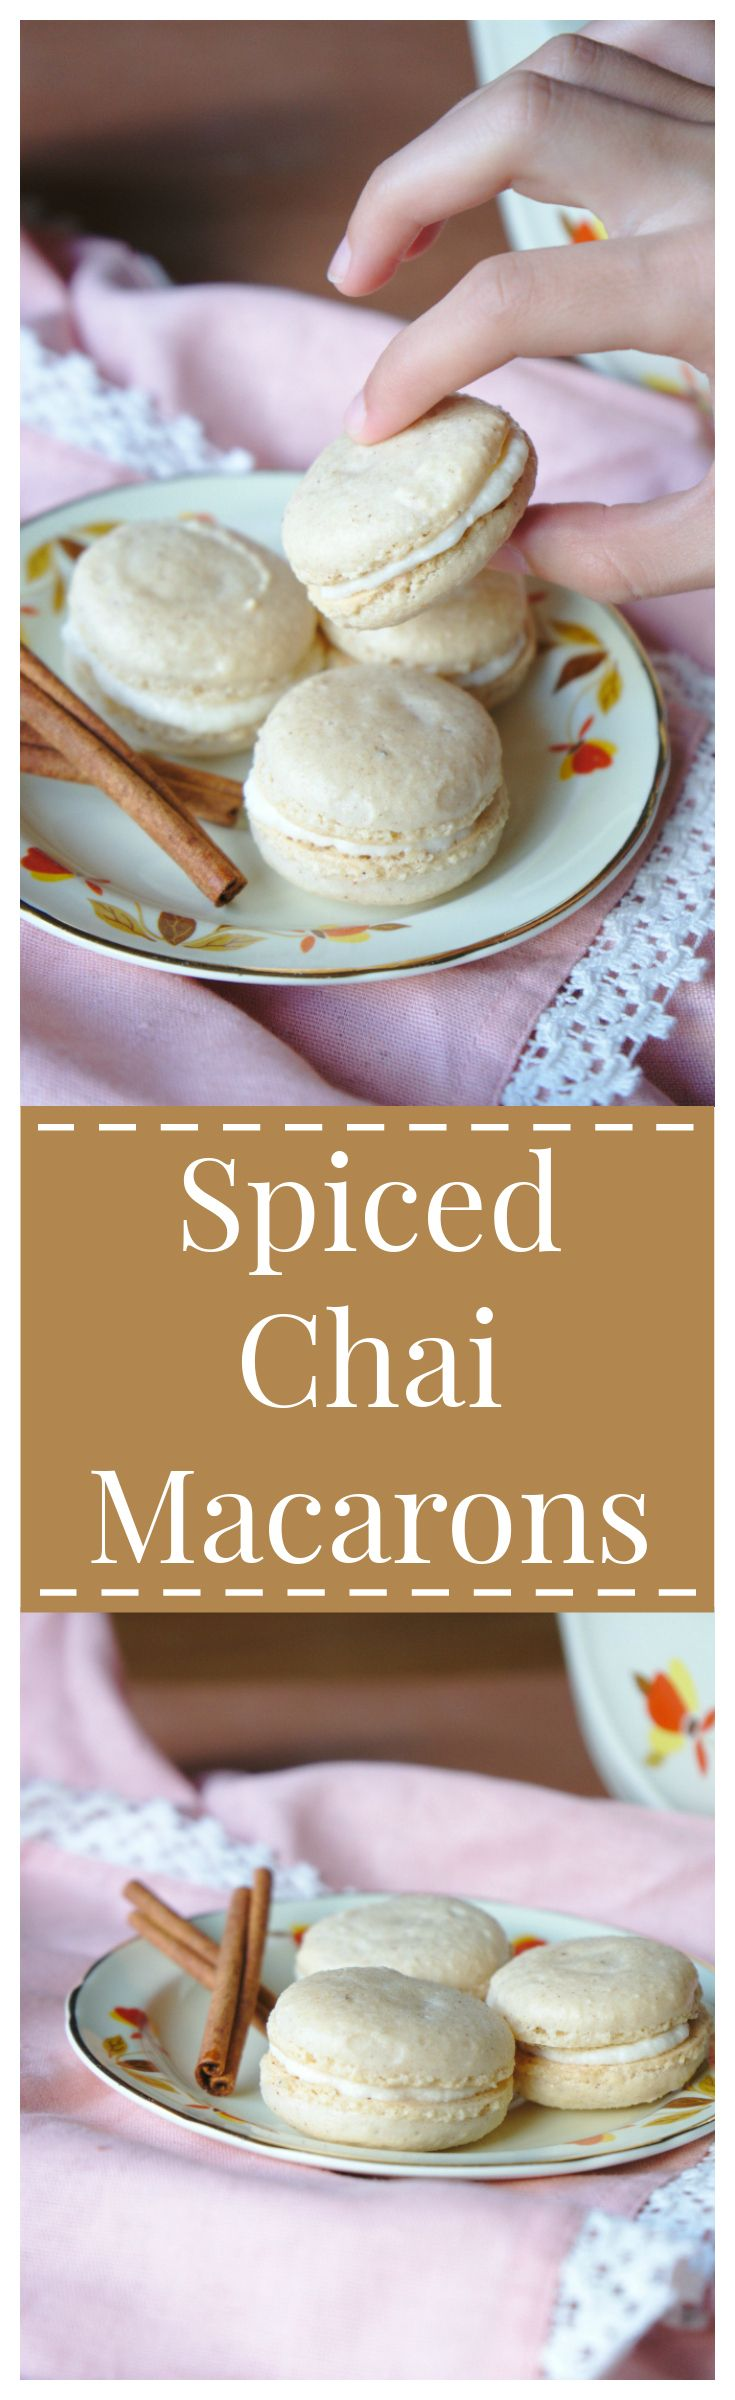 Spiced Chai Macarons – An elegant french dessert with a twist! These macarons are made with flavorful spices and a light vanilla buttercream filling!